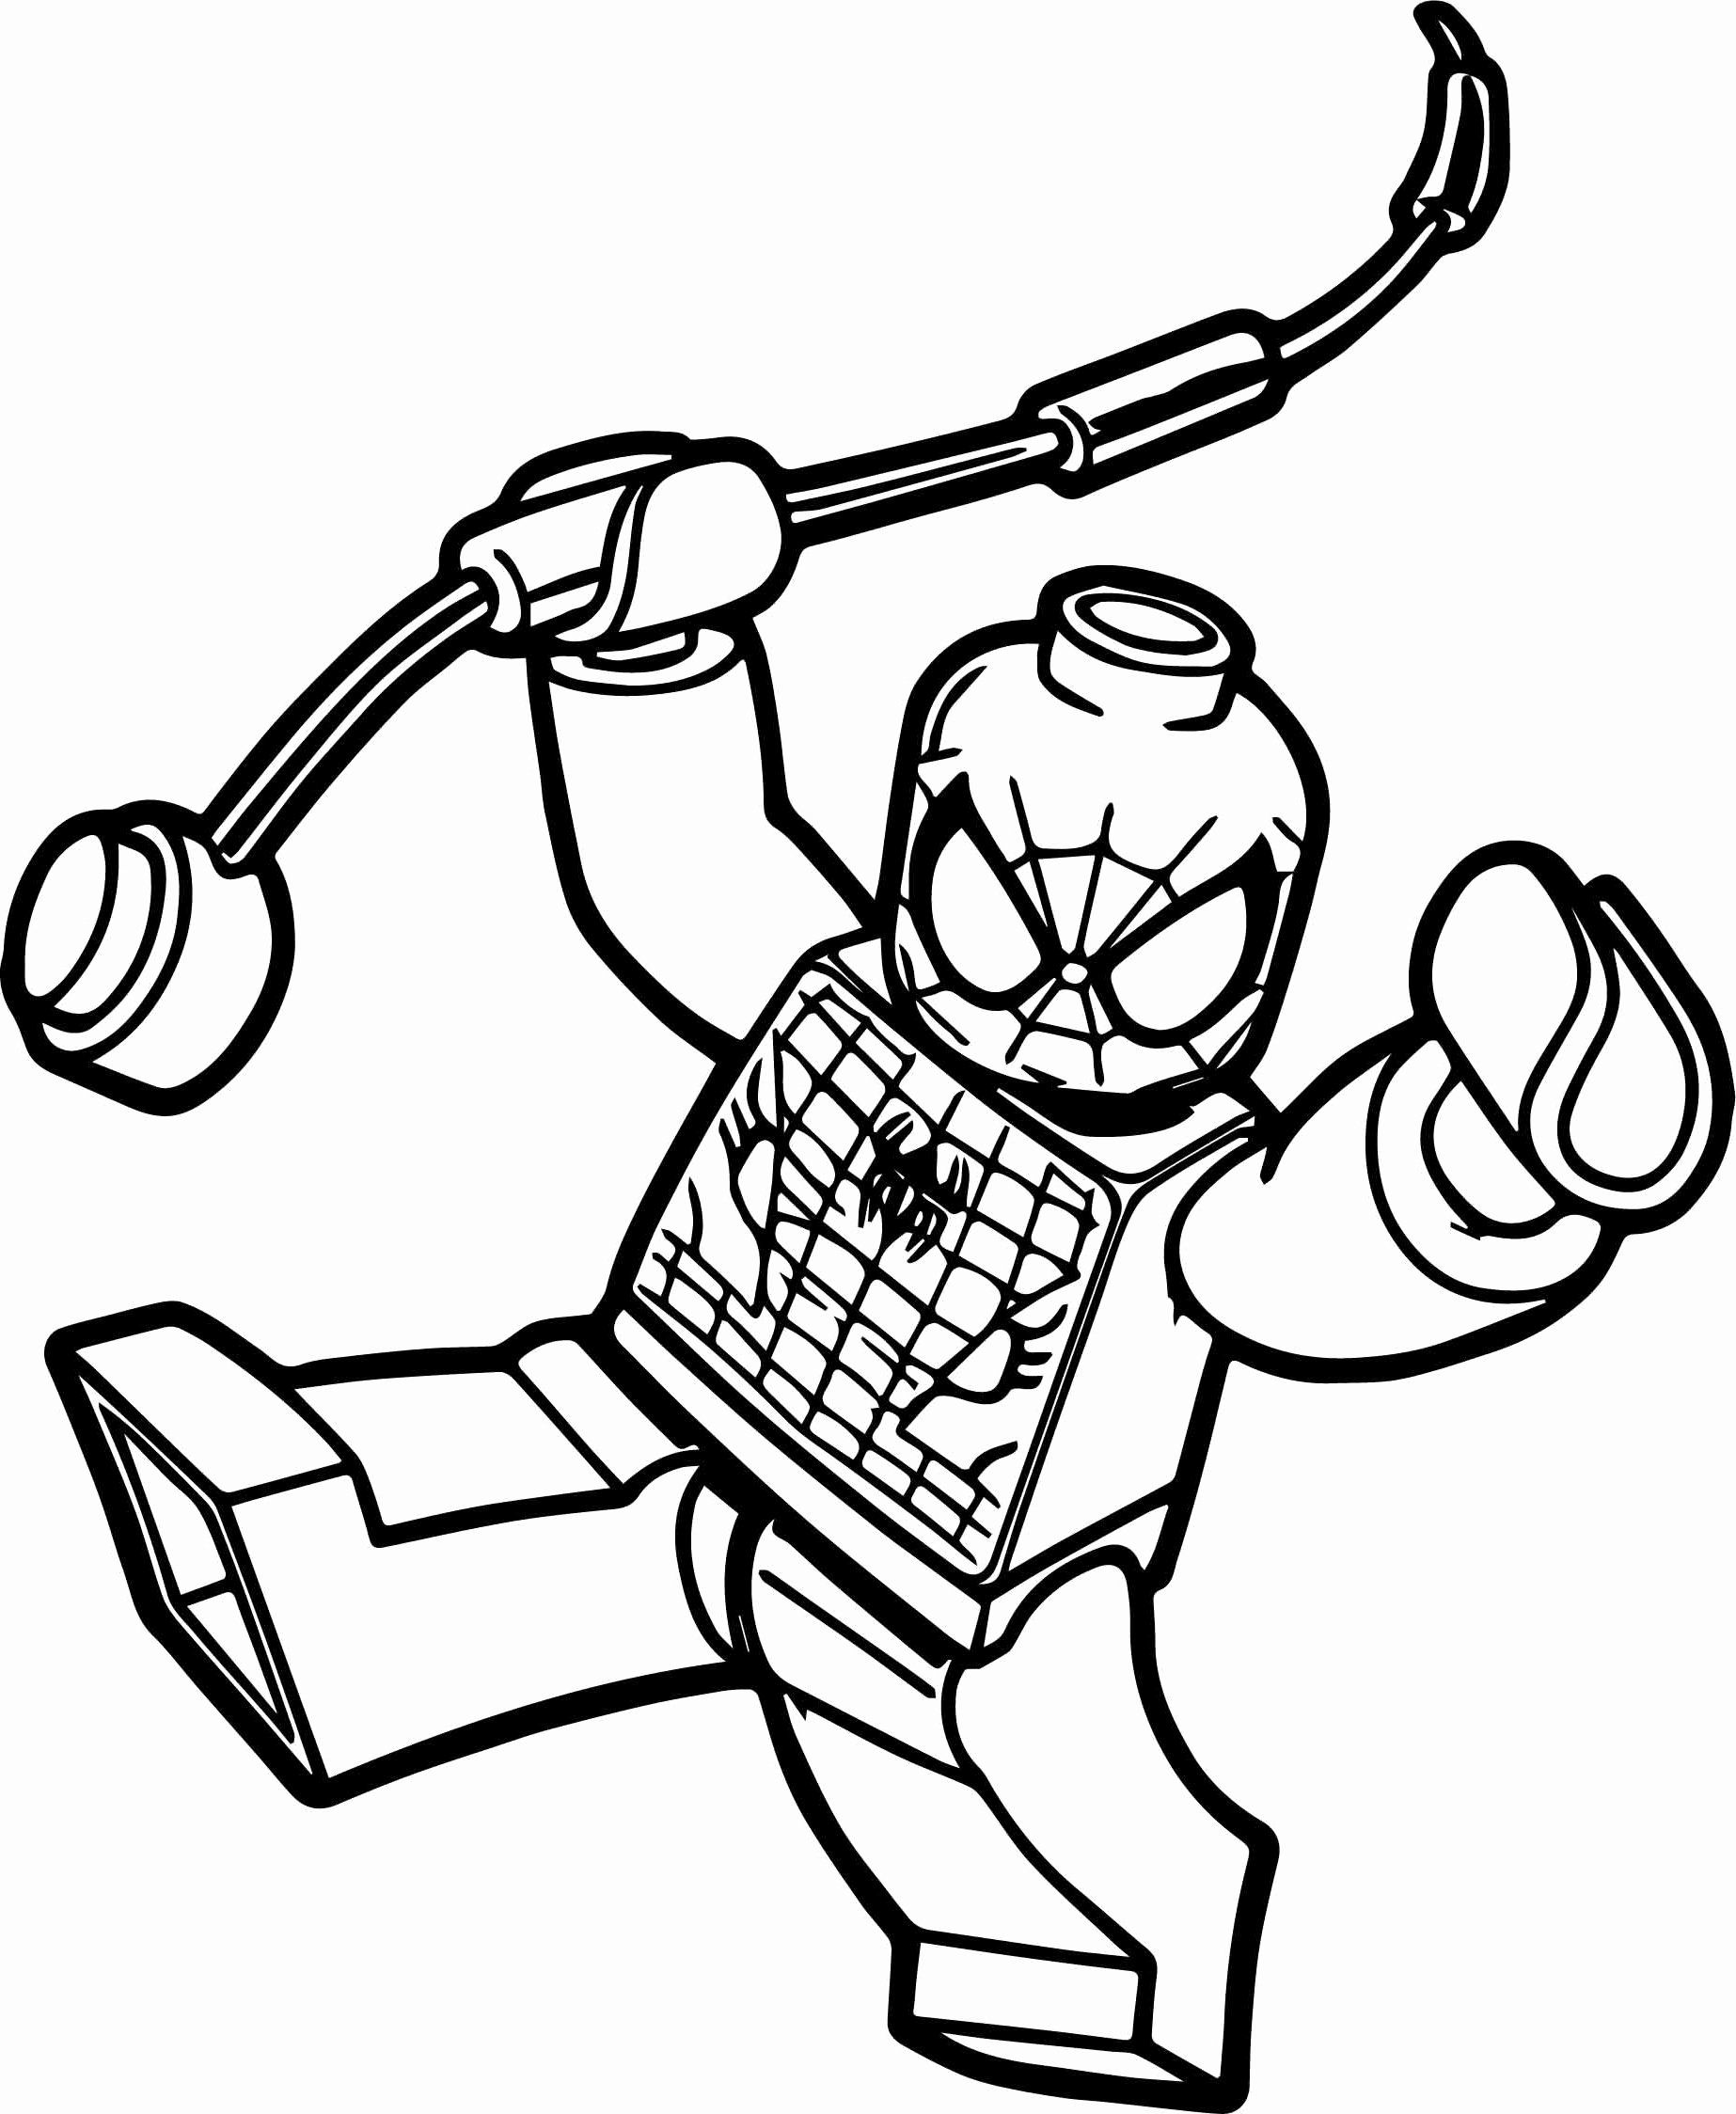 Lego Spiderman Coloring Page Best Of Lego Spiderman Coloring Pages Coloring Page Spiderman Coloring Hulk Coloring Pages Animal Coloring Pages